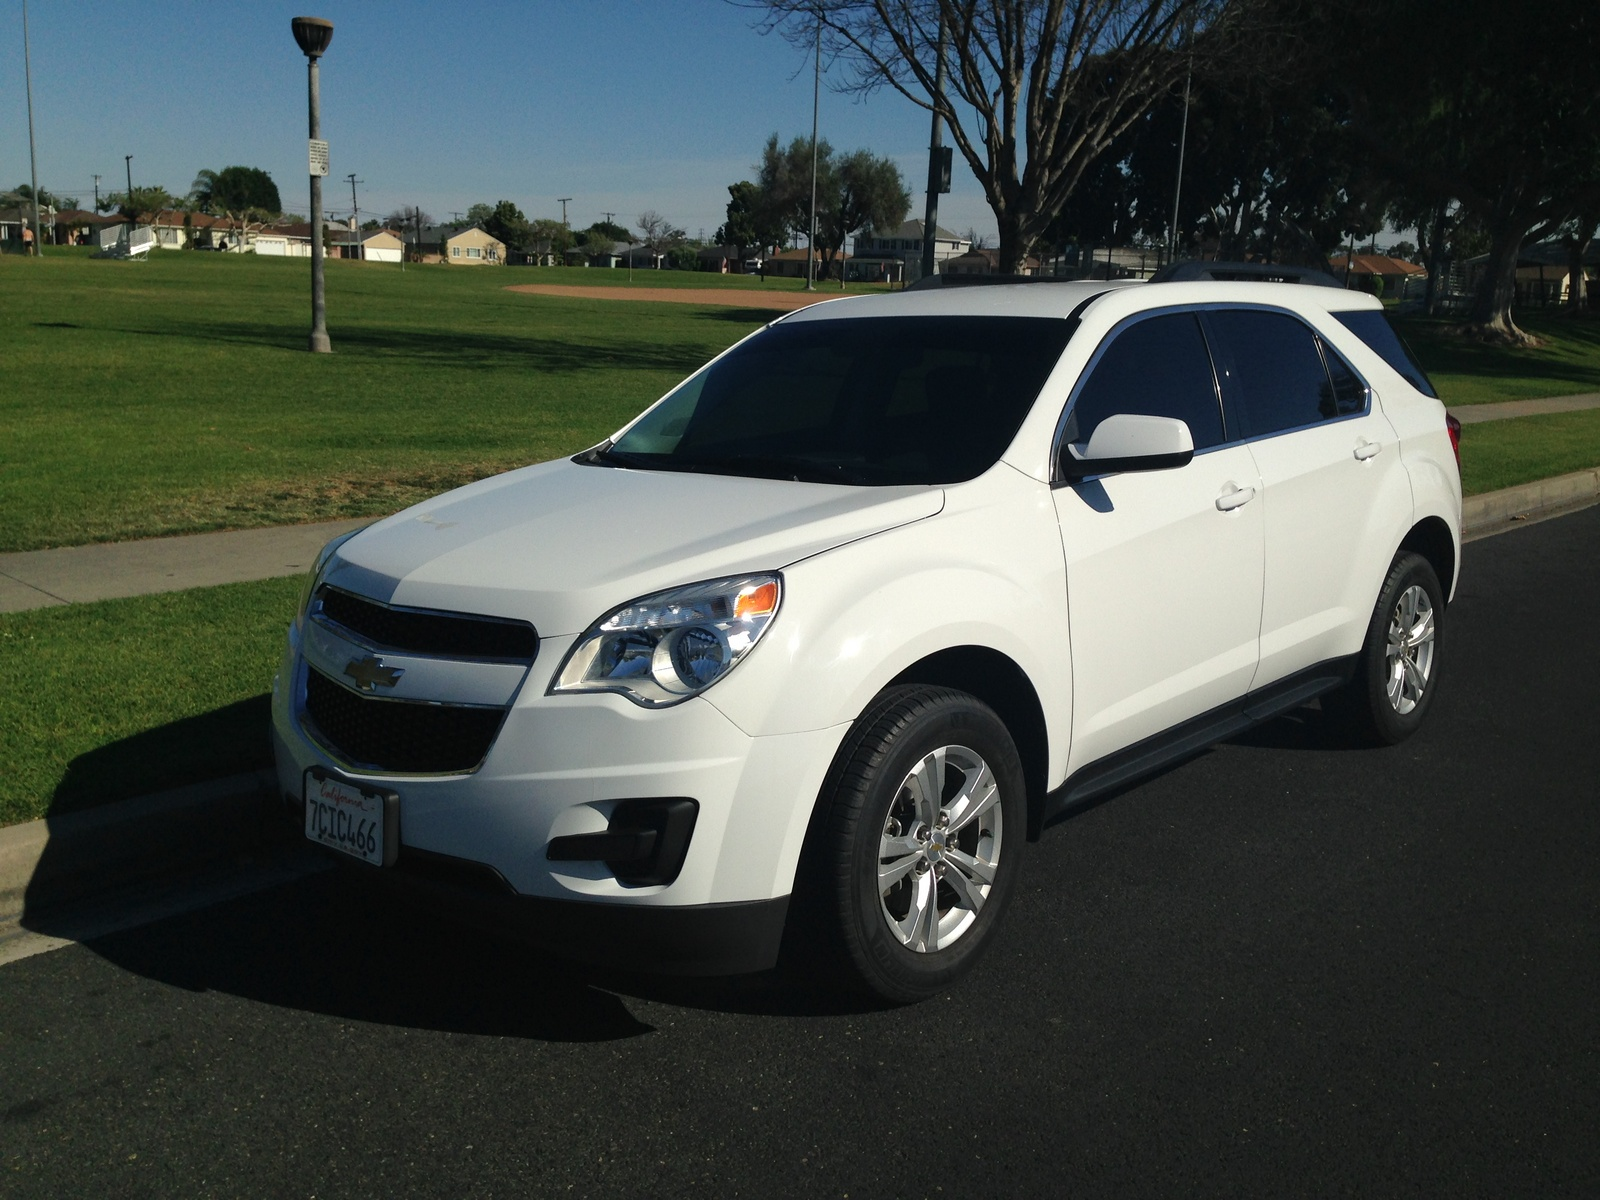 2011 chevrolet equinox reviews pictures and prices us autos post. Black Bedroom Furniture Sets. Home Design Ideas